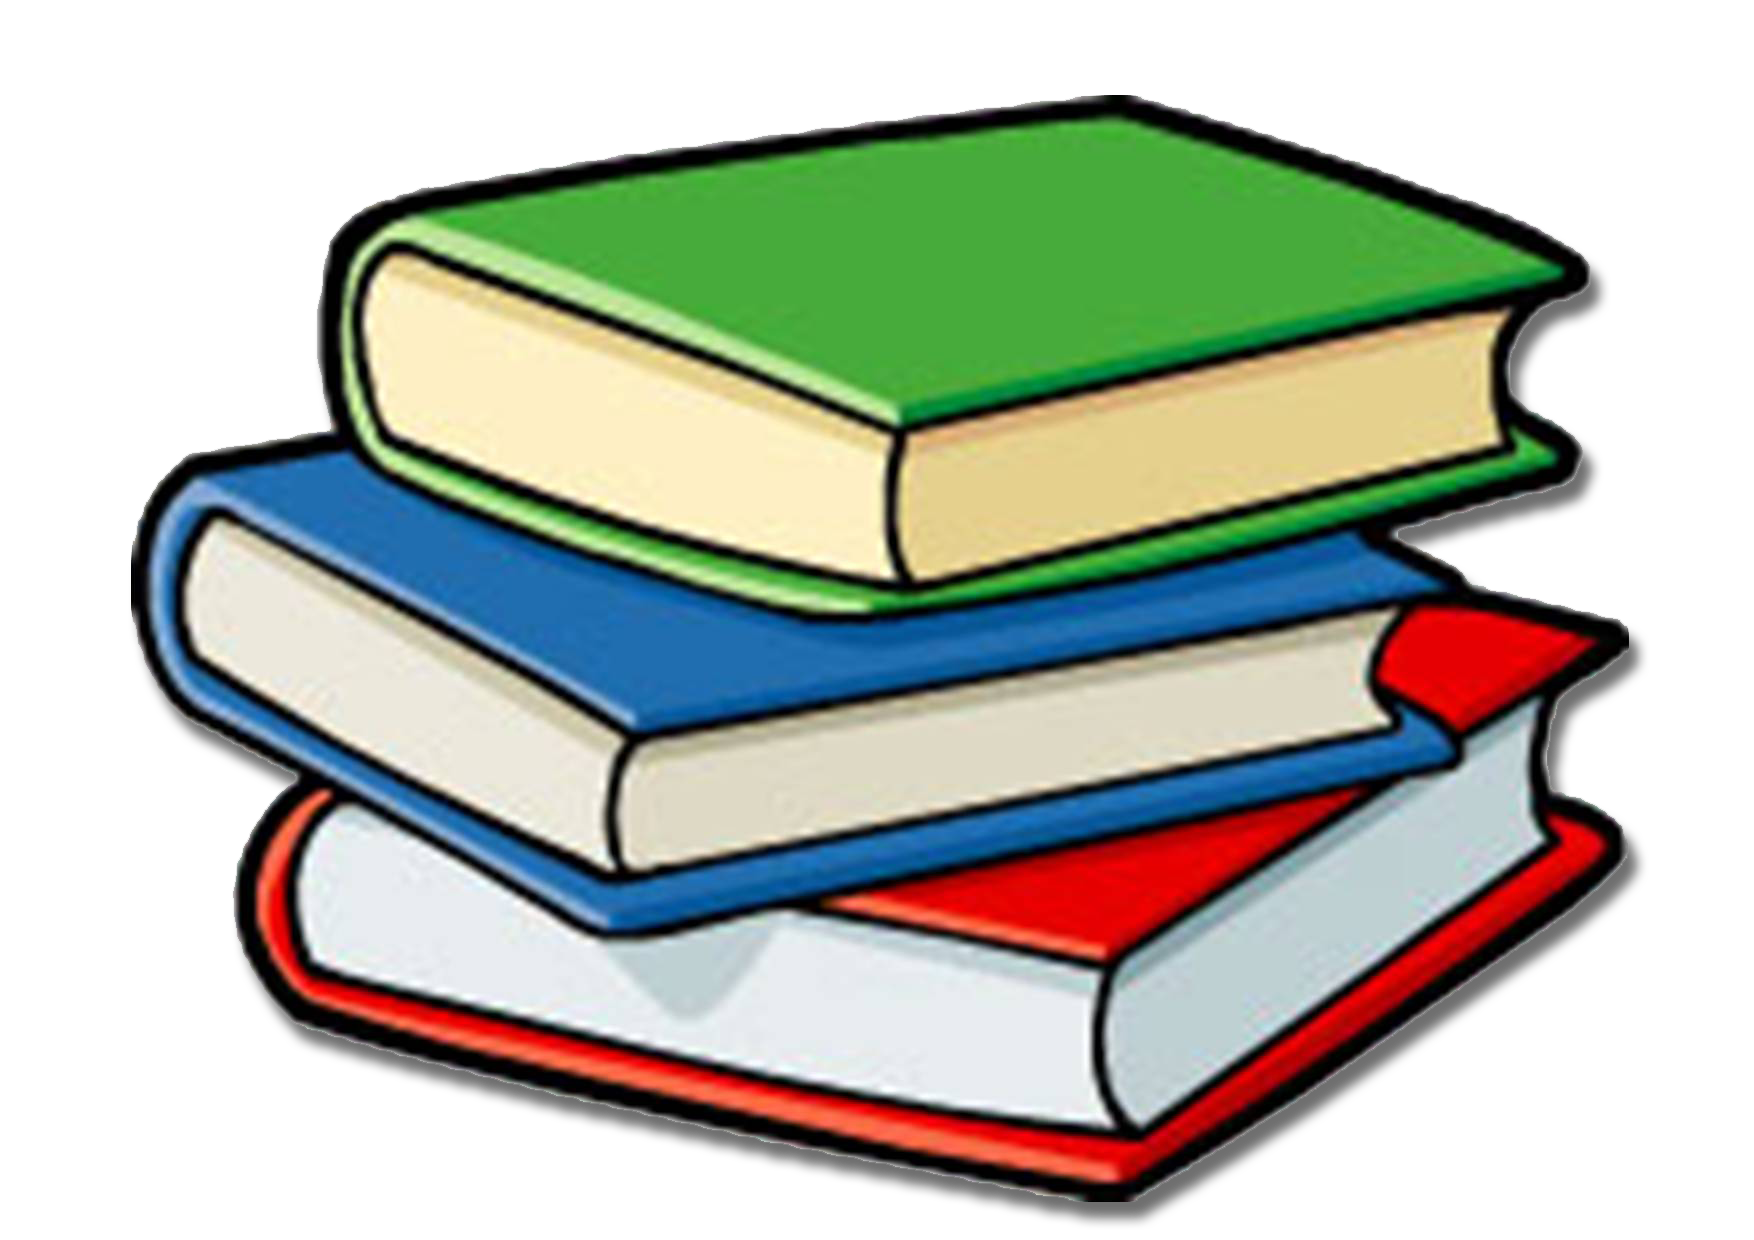 Books clipart png 2 » Clipart Station.